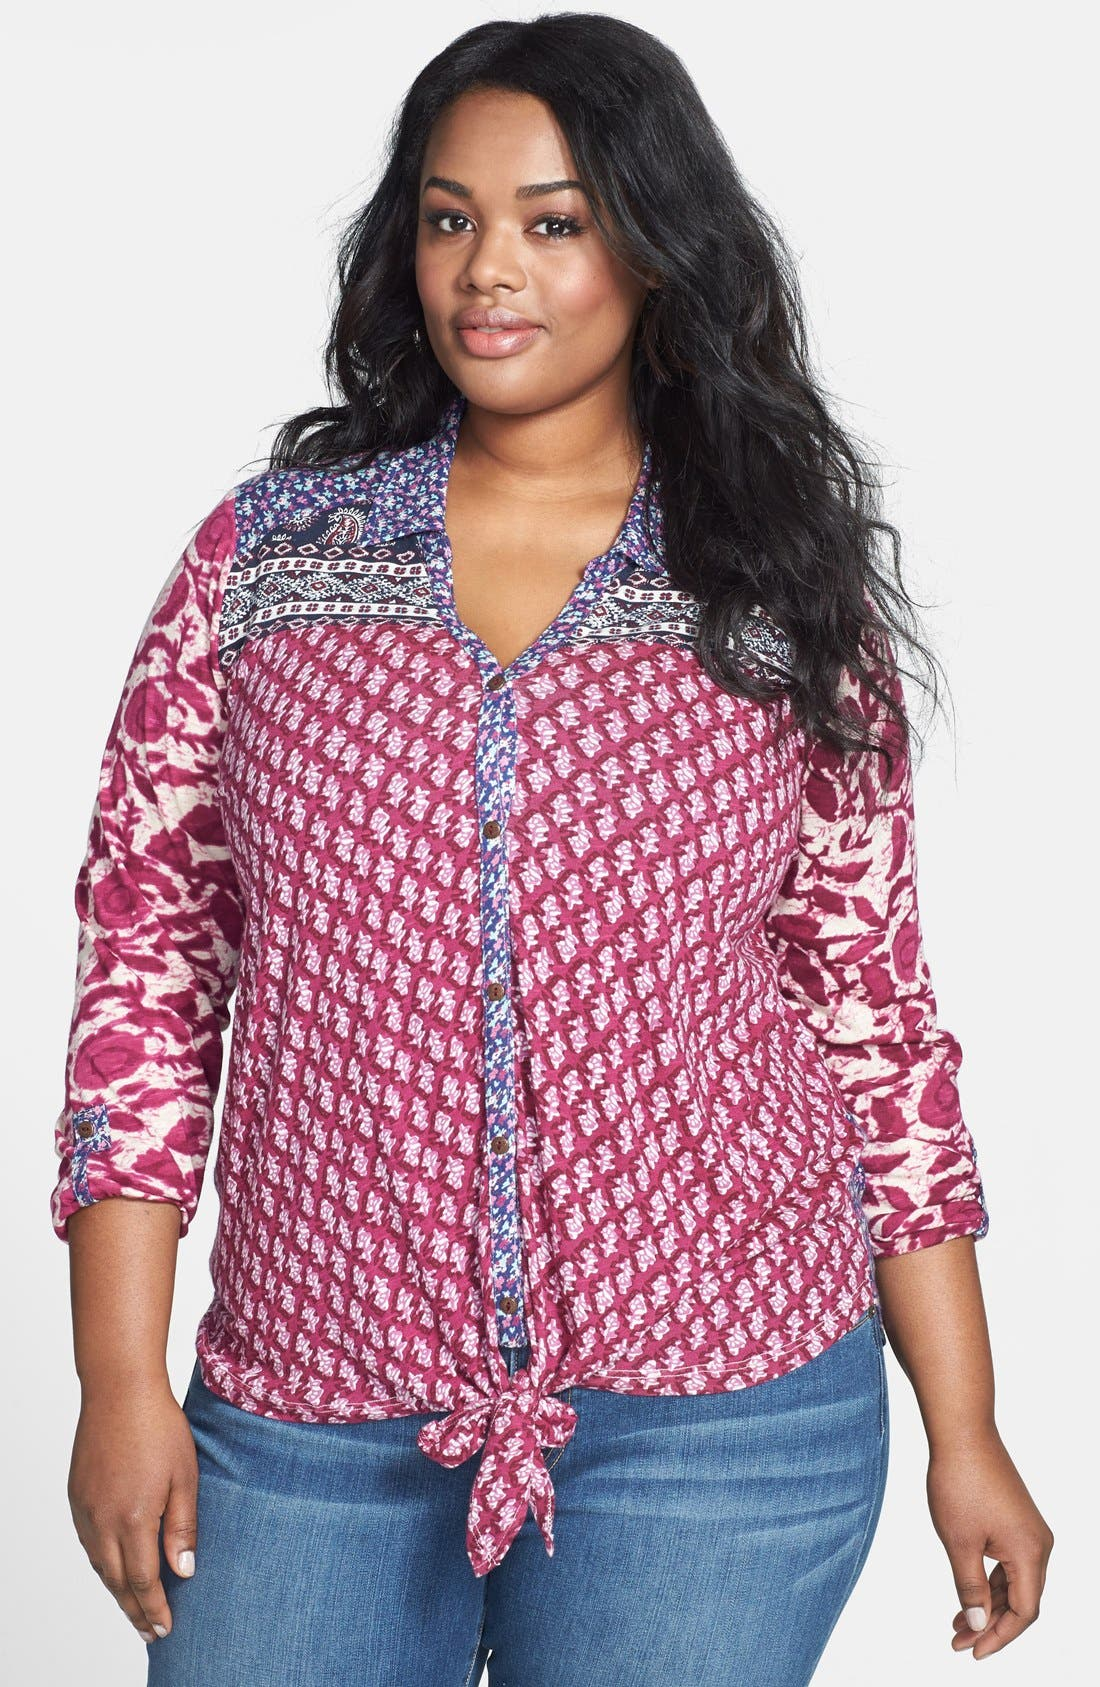 Alternate Image 1 Selected - Lucky Brand 'Corte Madera' Tie Front Top (Plus Size)